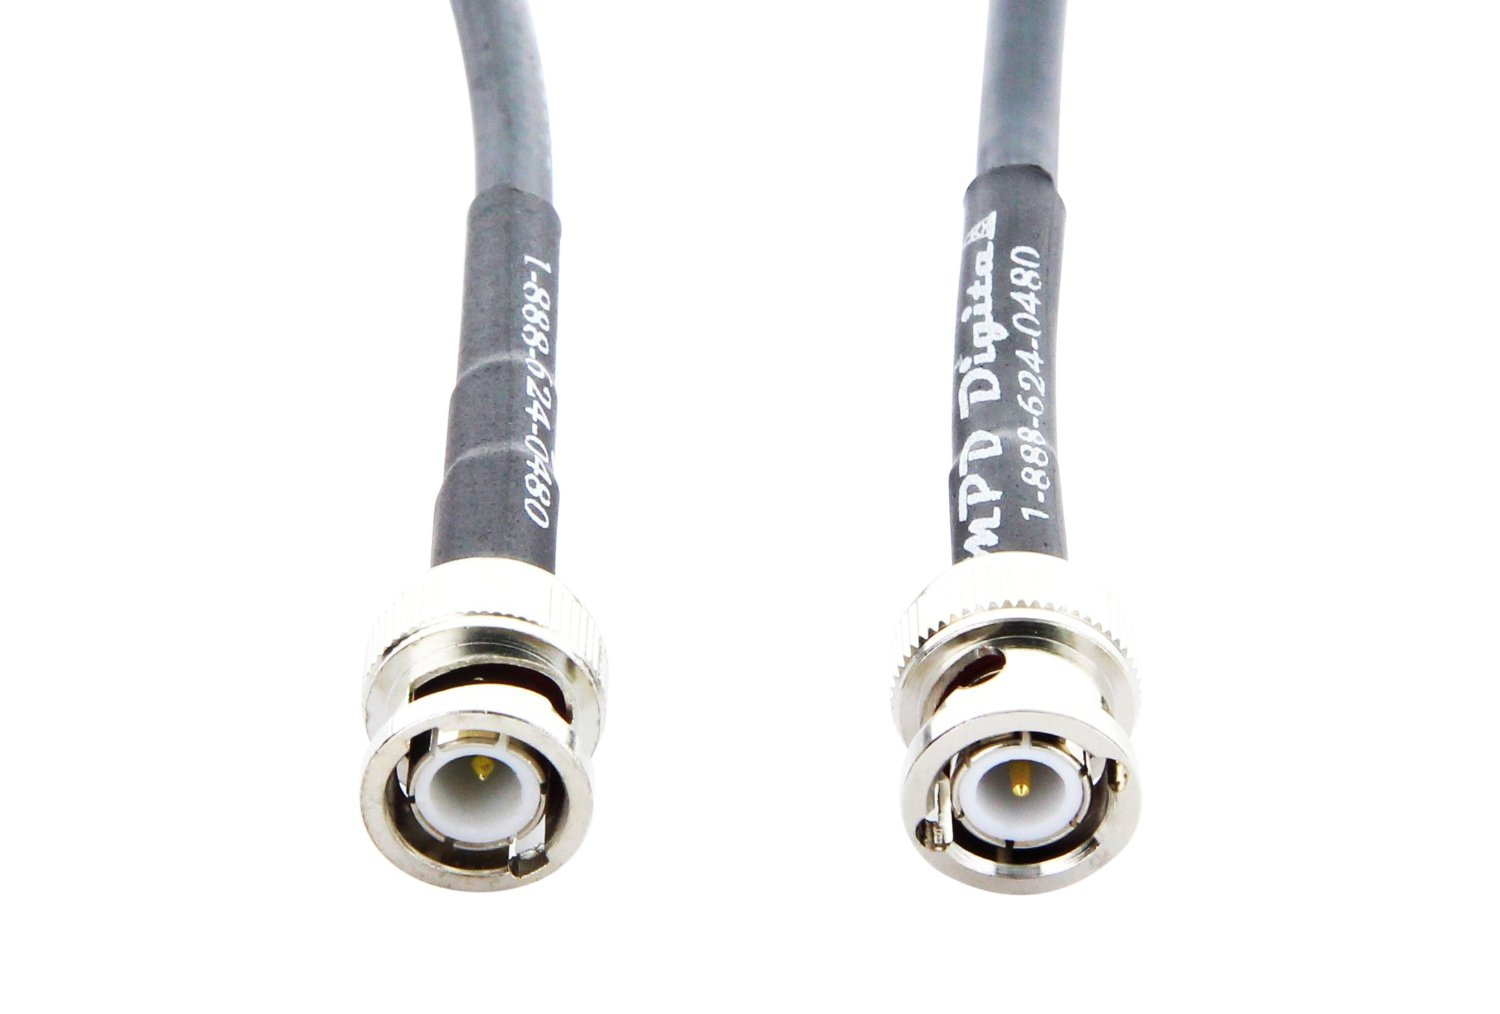 Tm RG-58 Coax Jumper Made in The U.S.A by MPD Digital RF Pigtail Cable BNC Male to Mini Uhf Male RG58 1M